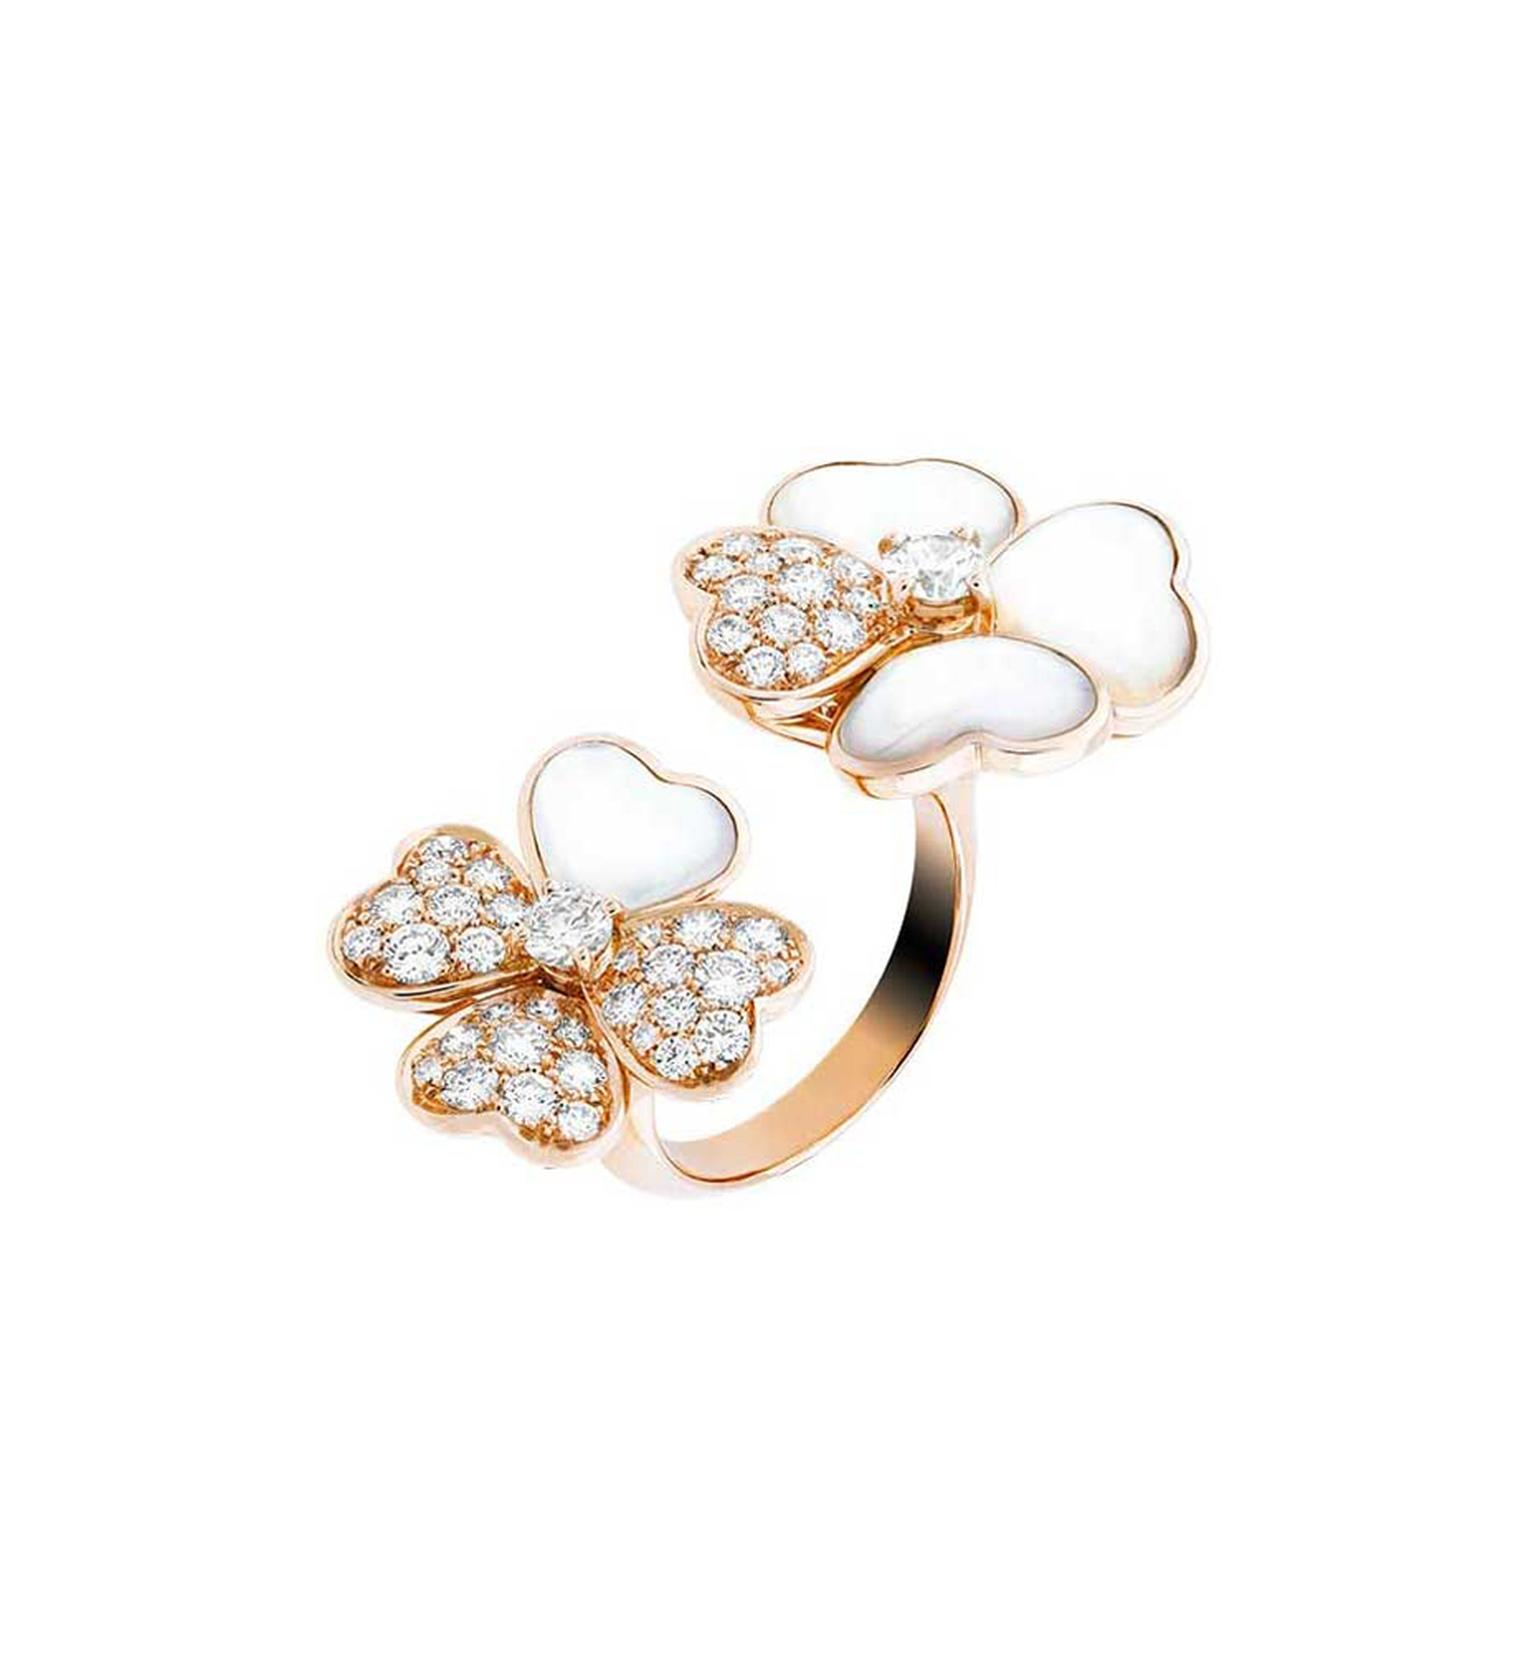 Van Cleef & Arpels Cosmos Between the Finger ring in rose gold with brilliant-cut diamond buds surrounded by white mother-of-pearl and diamond petals (£14,500).